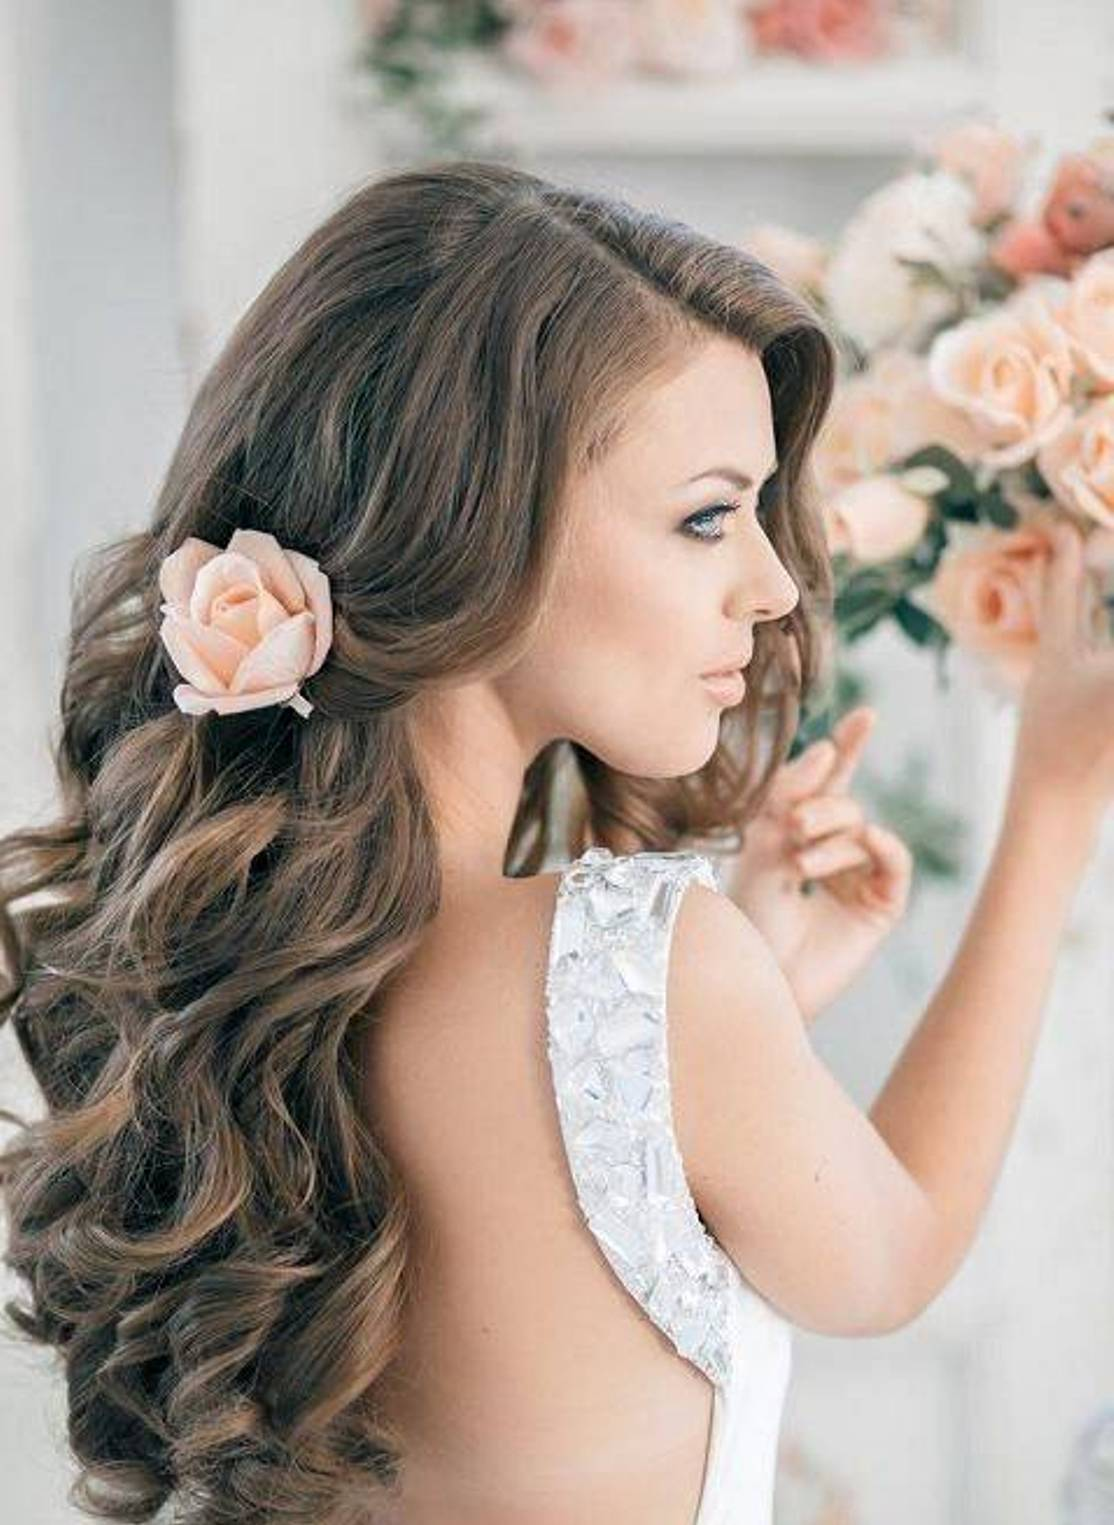 hairstyle ideas for long hair different – wodip